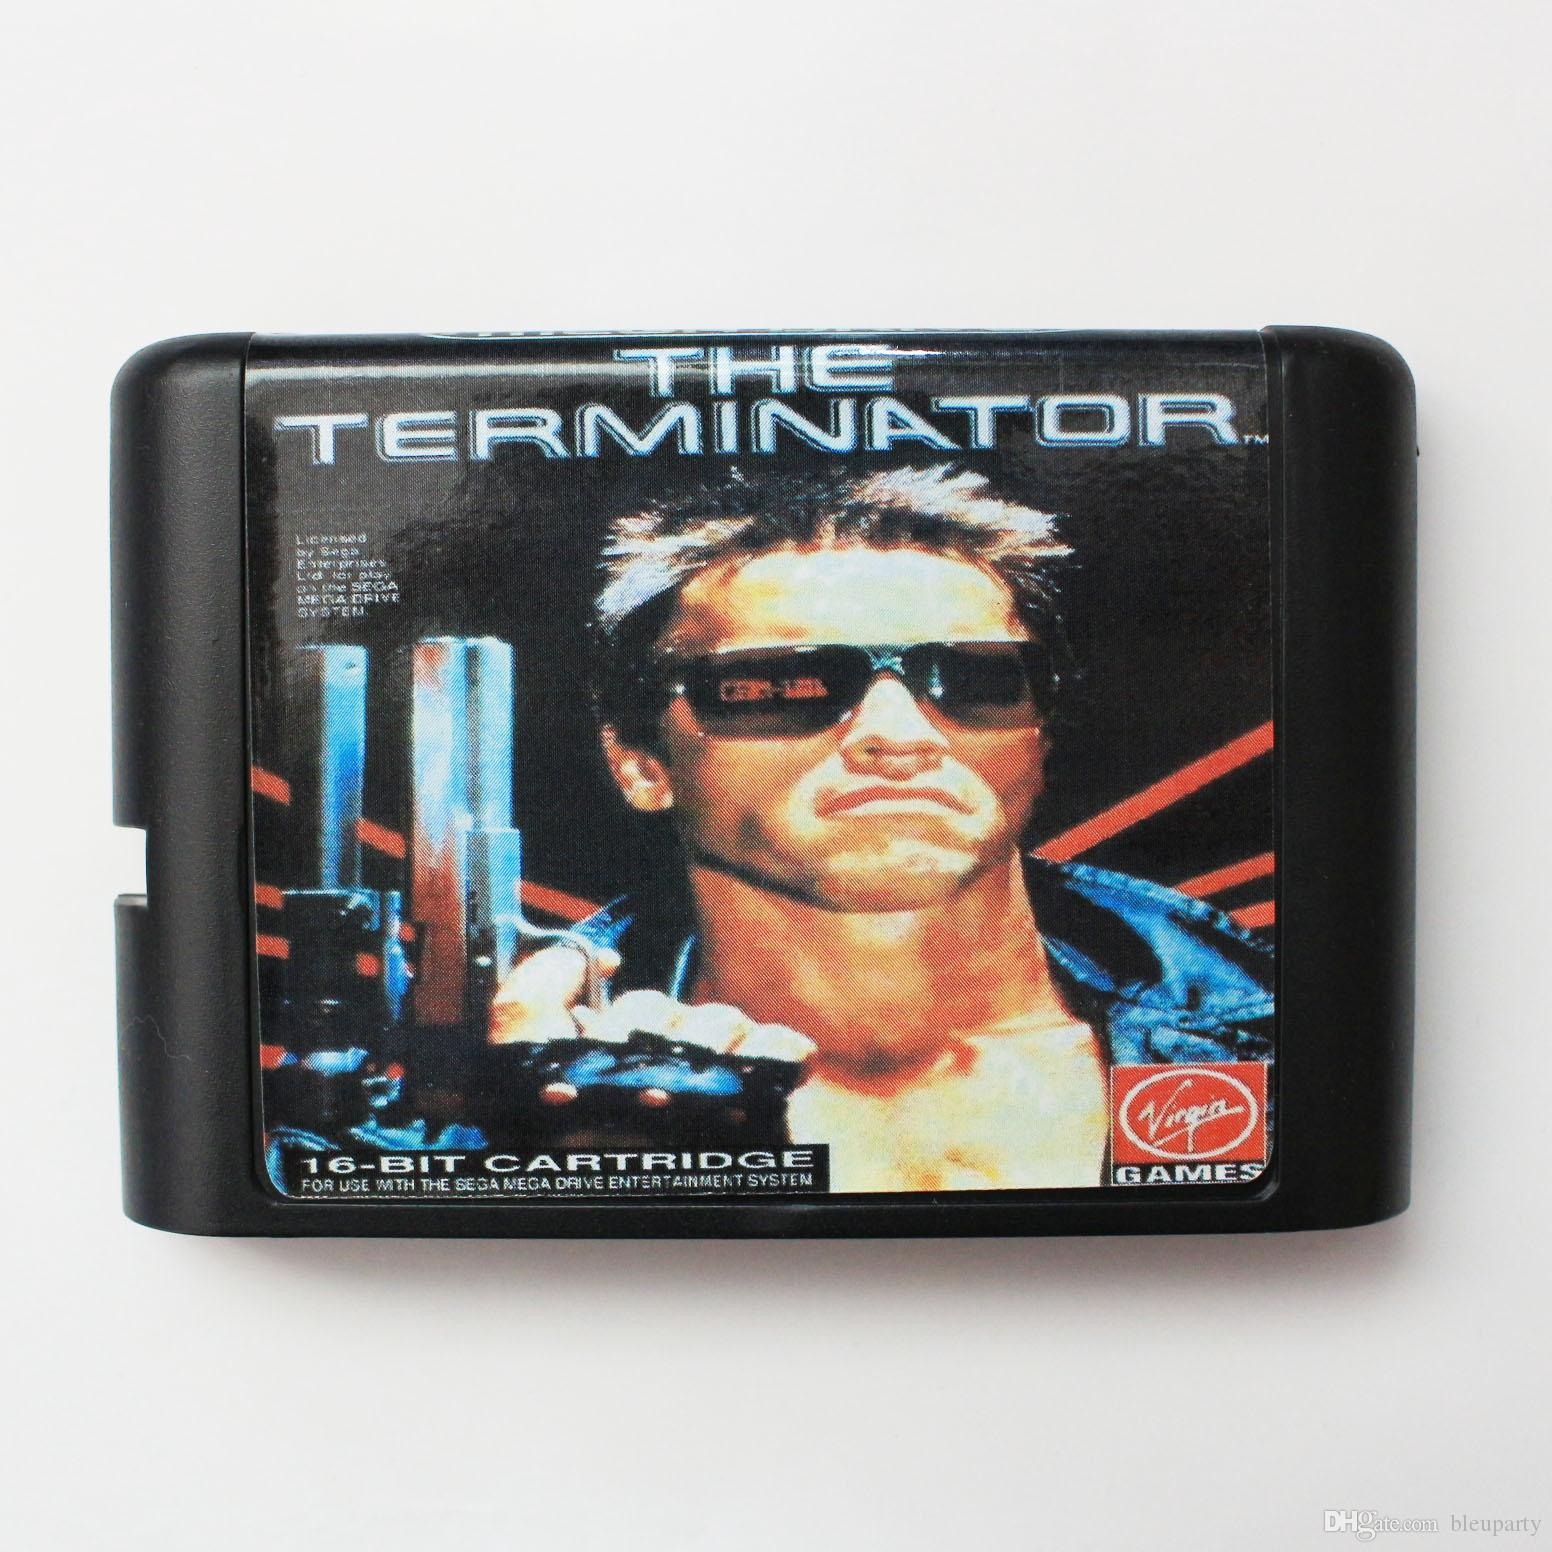 terminator 16 bit game cart newest game cartridge for sega mega